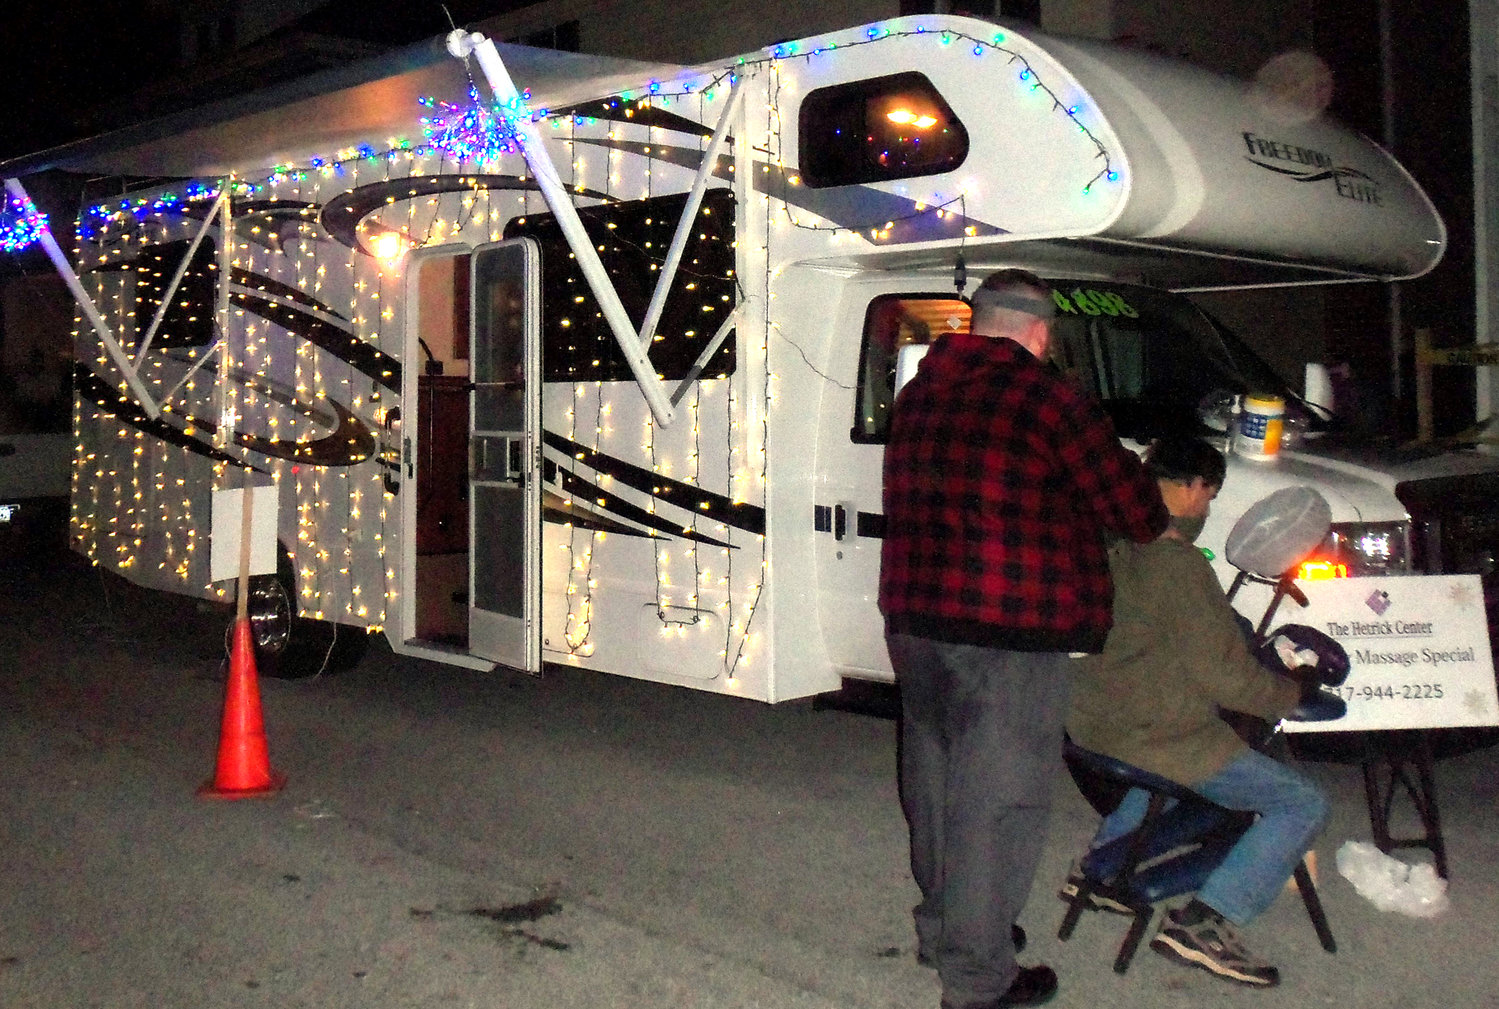 The Hetrick Center of Middletown was represented at Saturday's Middletown borough tree-lighting with its own trailer. Licensed massage therapist Carlin Miller gives a free 5-minute massage sample to a member of the crowd Nov. 30.